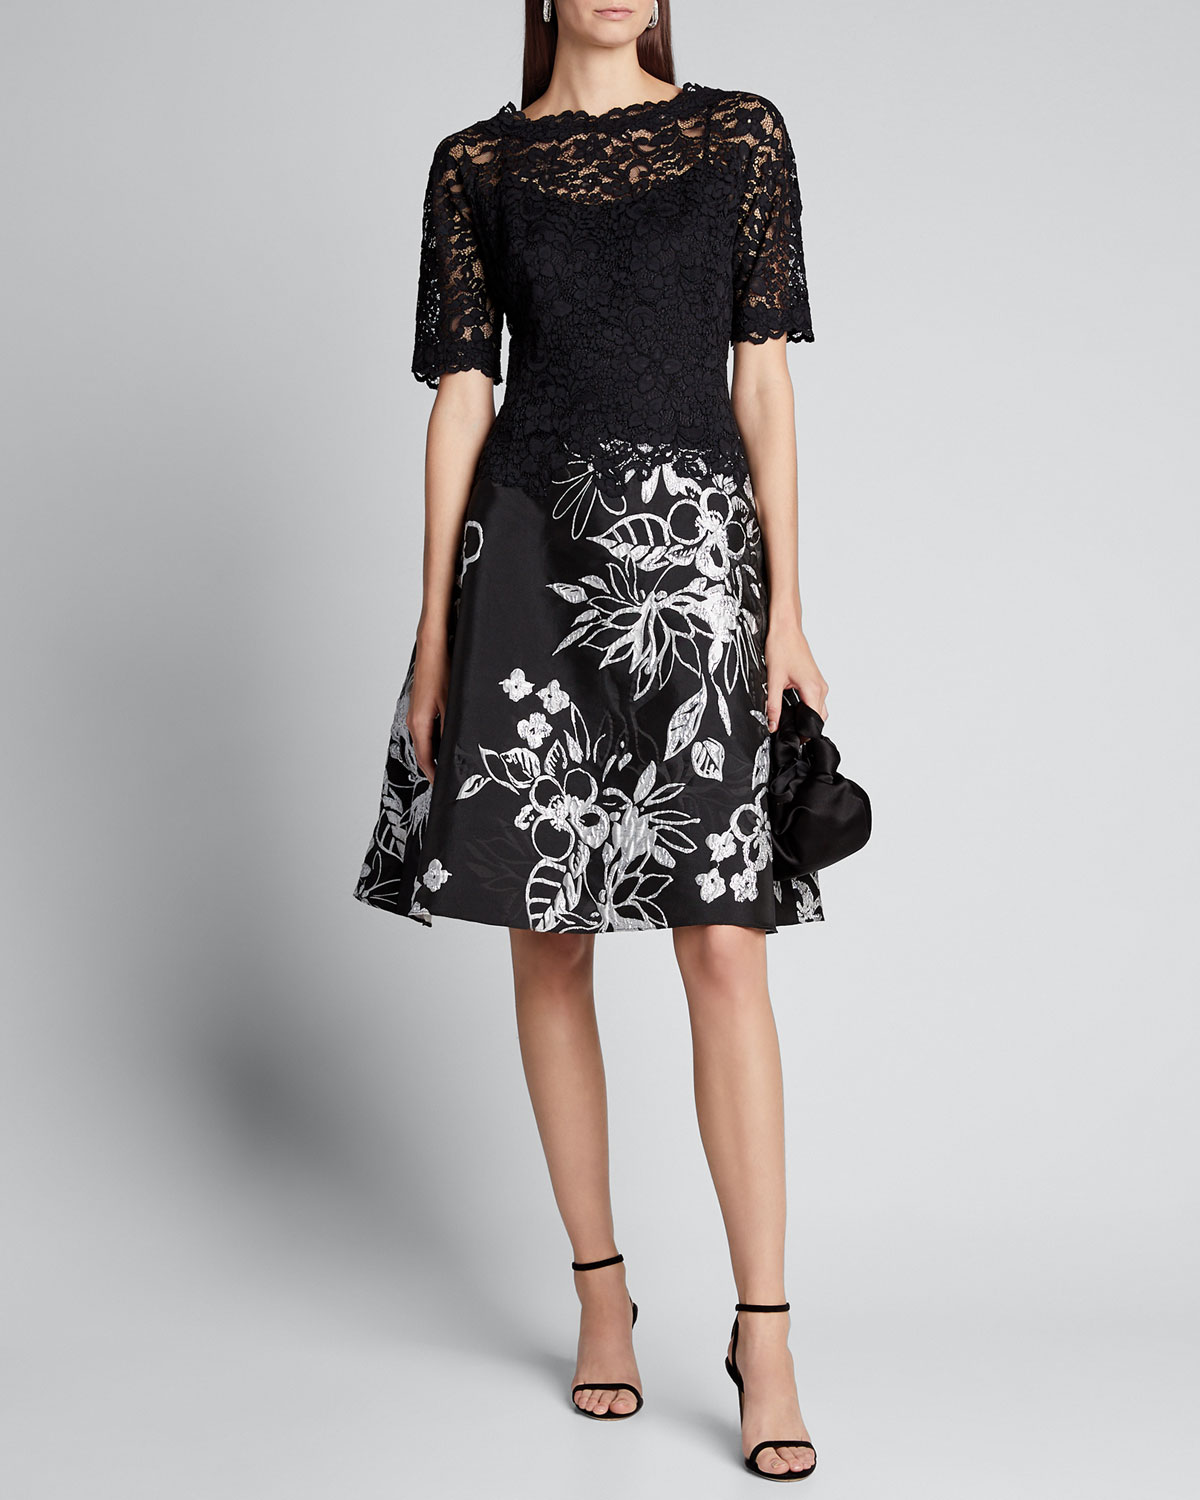 Rickie Freeman For Teri Jon  ELBOW-SLEEVE LACE BODICE DRESS W/ EMBROIDERED SKIRT